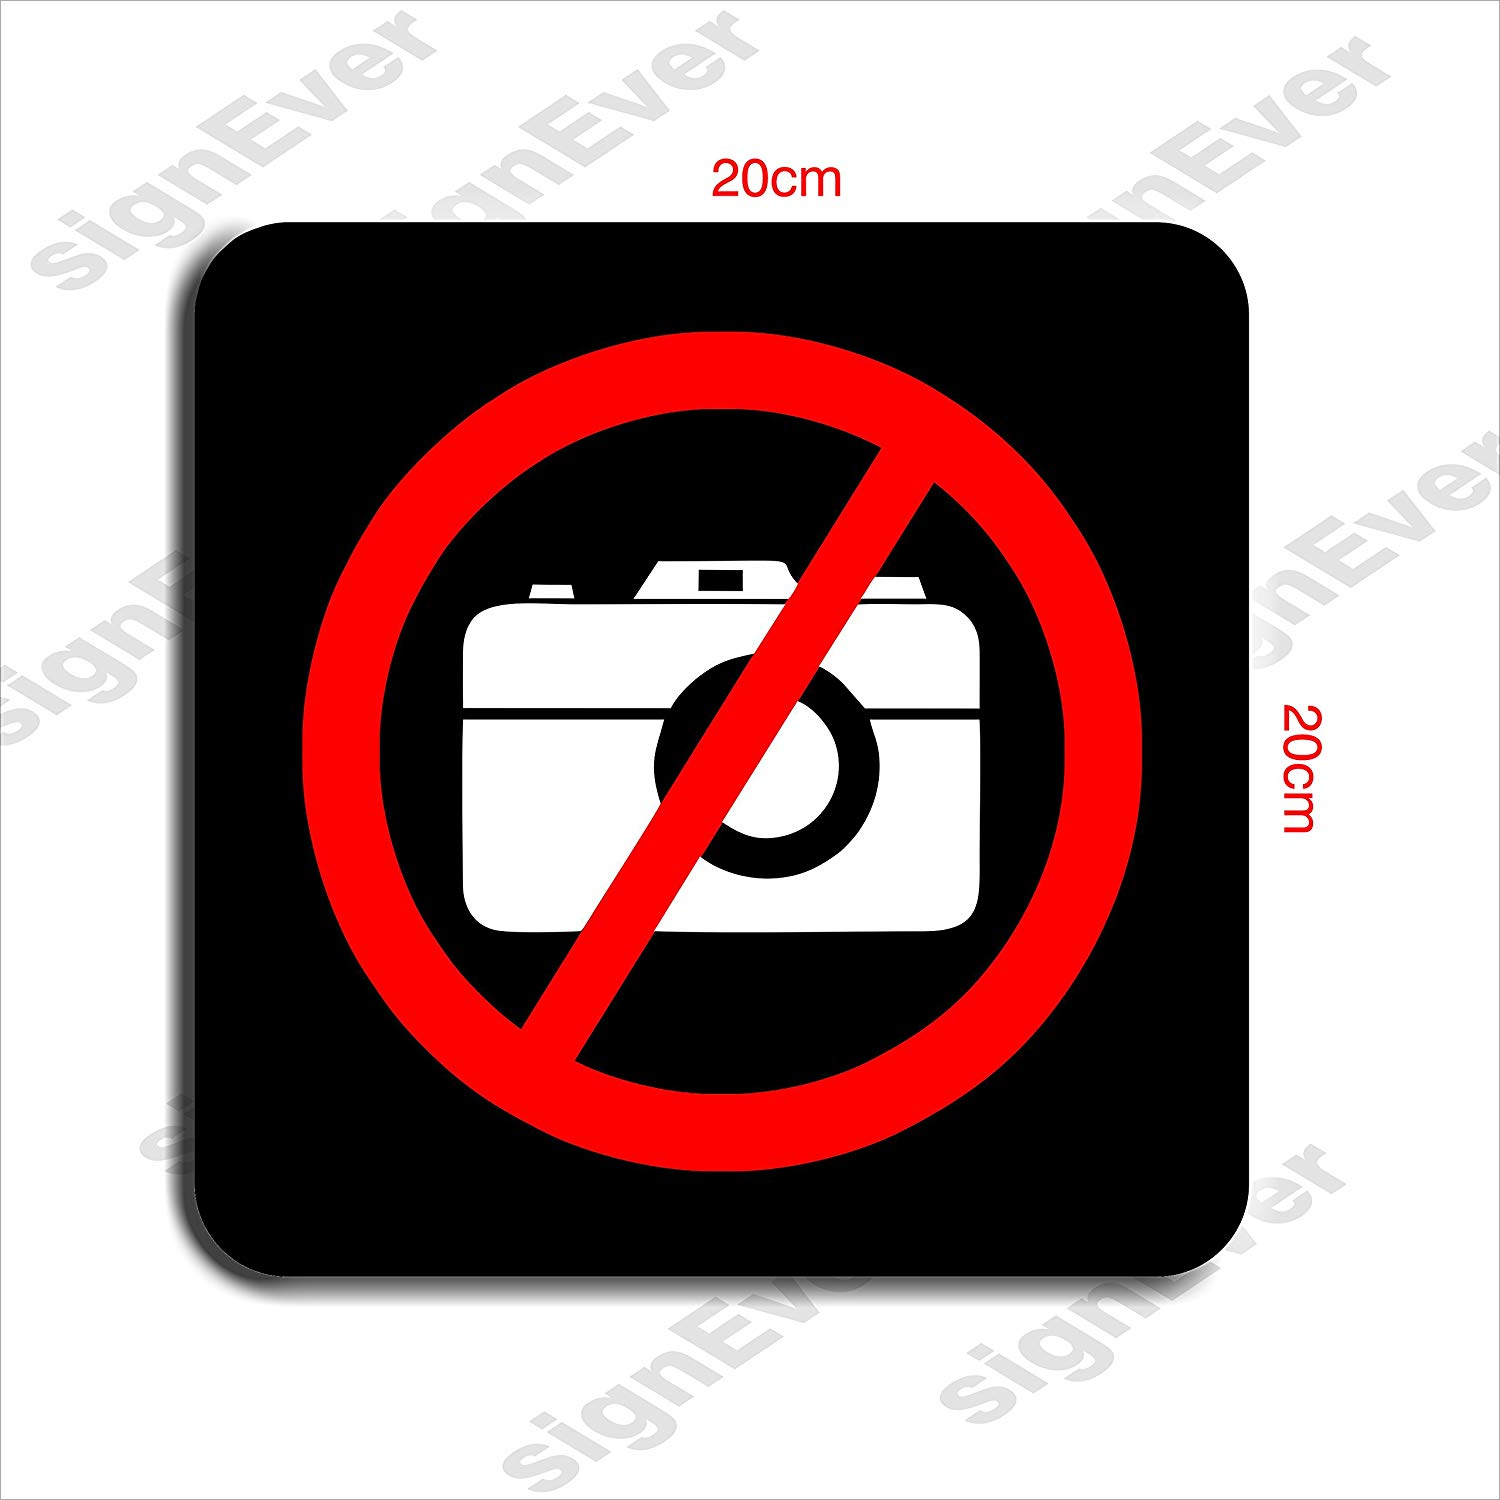 SIGN EVER Photography Restricted Logo Sign Board With Double.